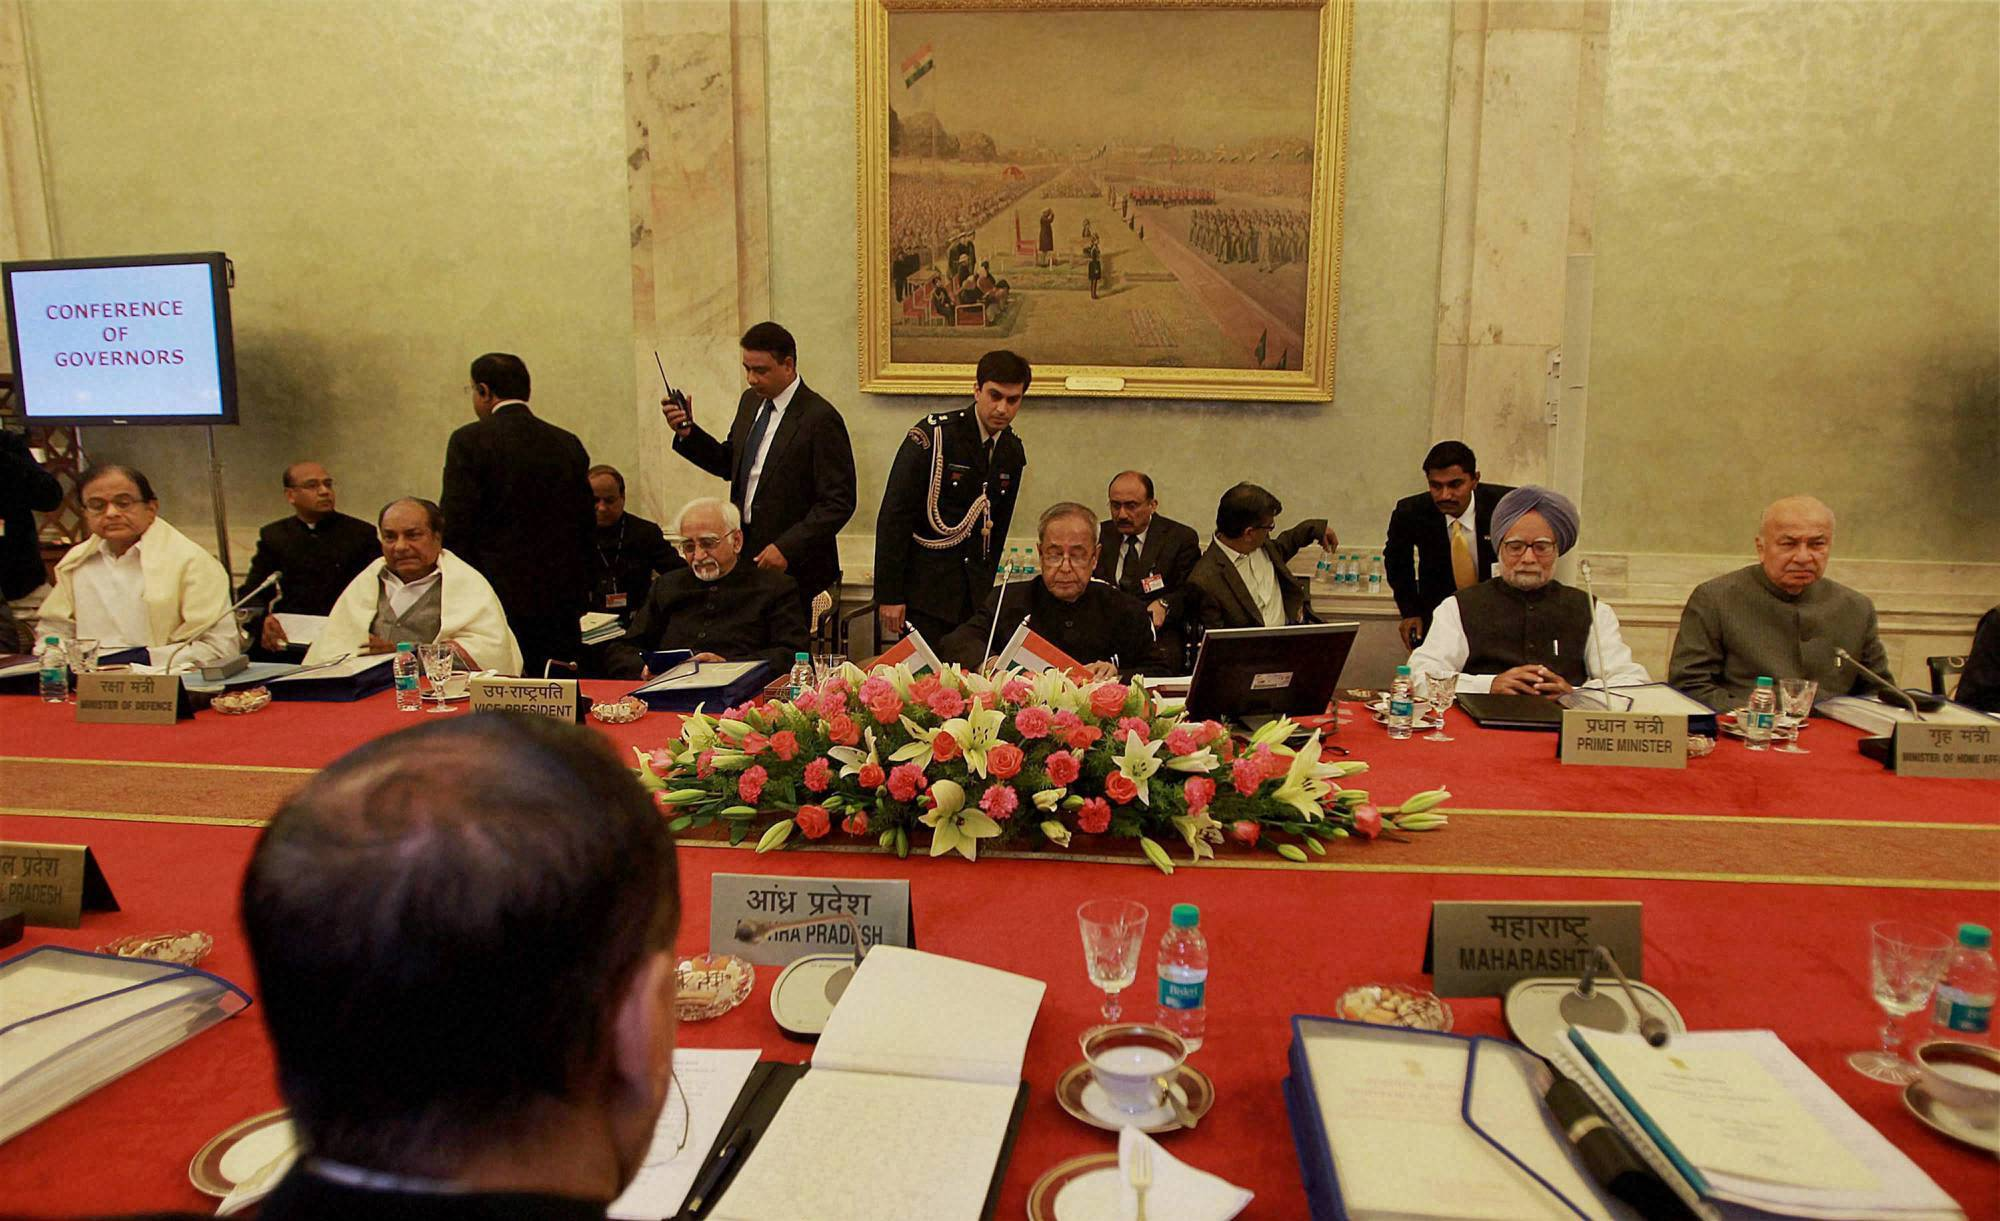 Governors' conference, cabinet ministers, Manmohan Singh, Pranab Mukherjee, Sushil Kumar Shinde